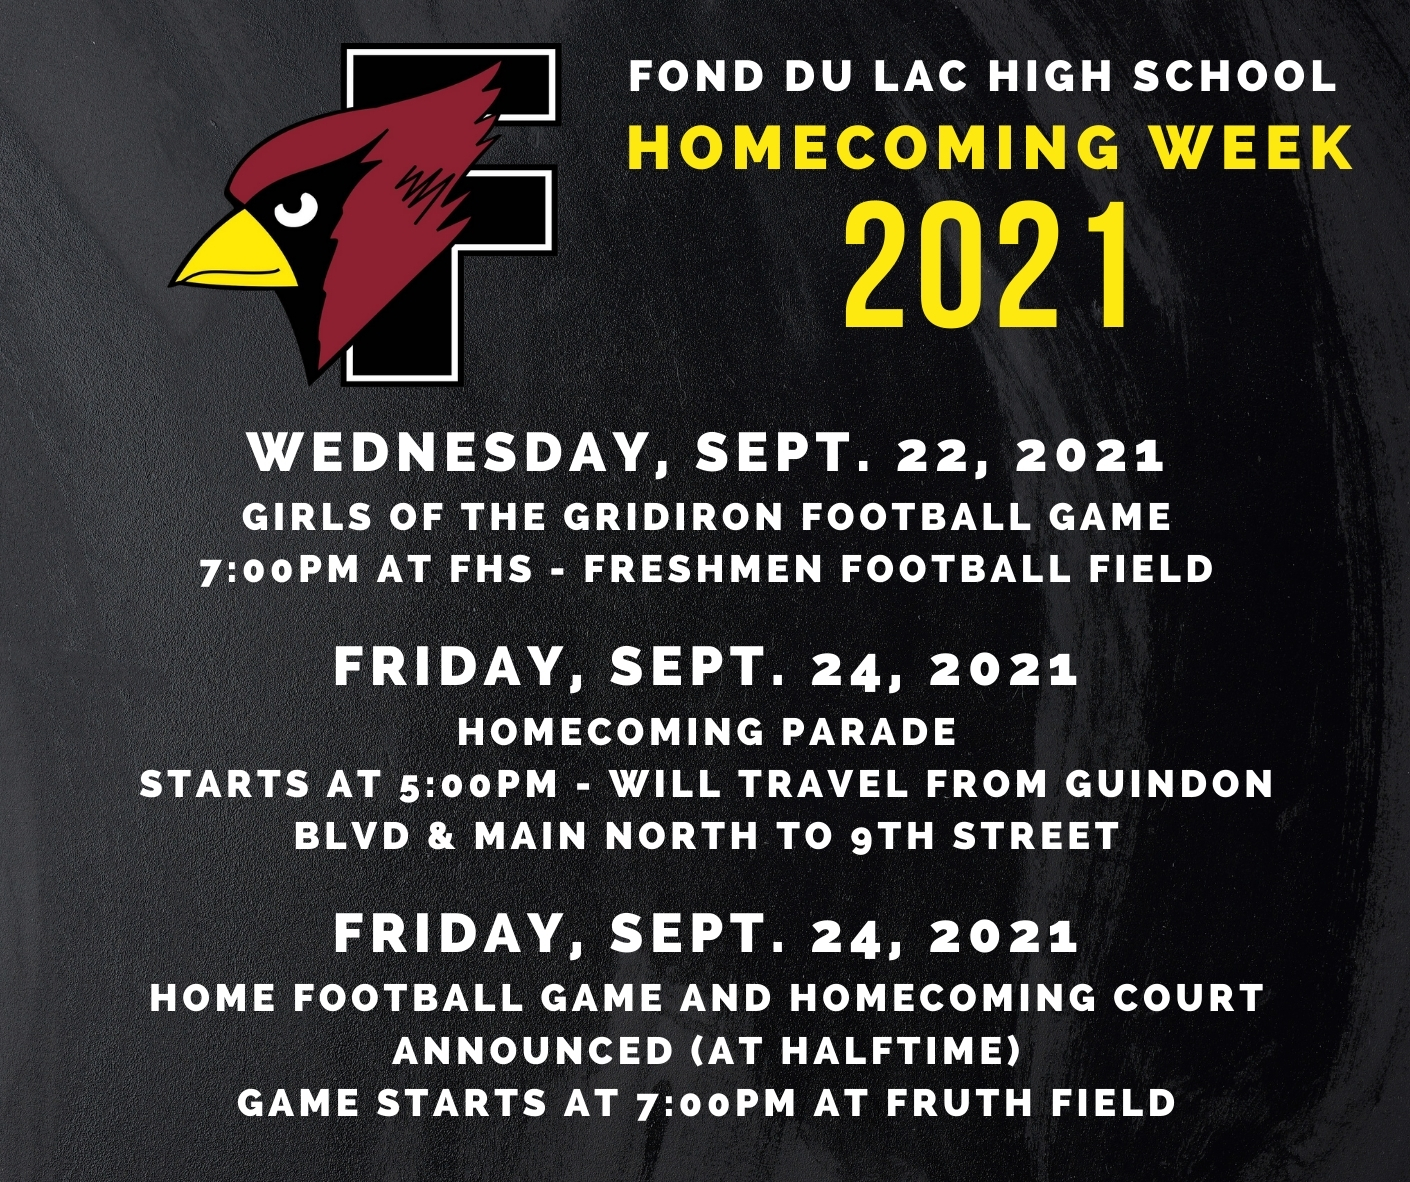 Homecoming 2021 details in graphical format